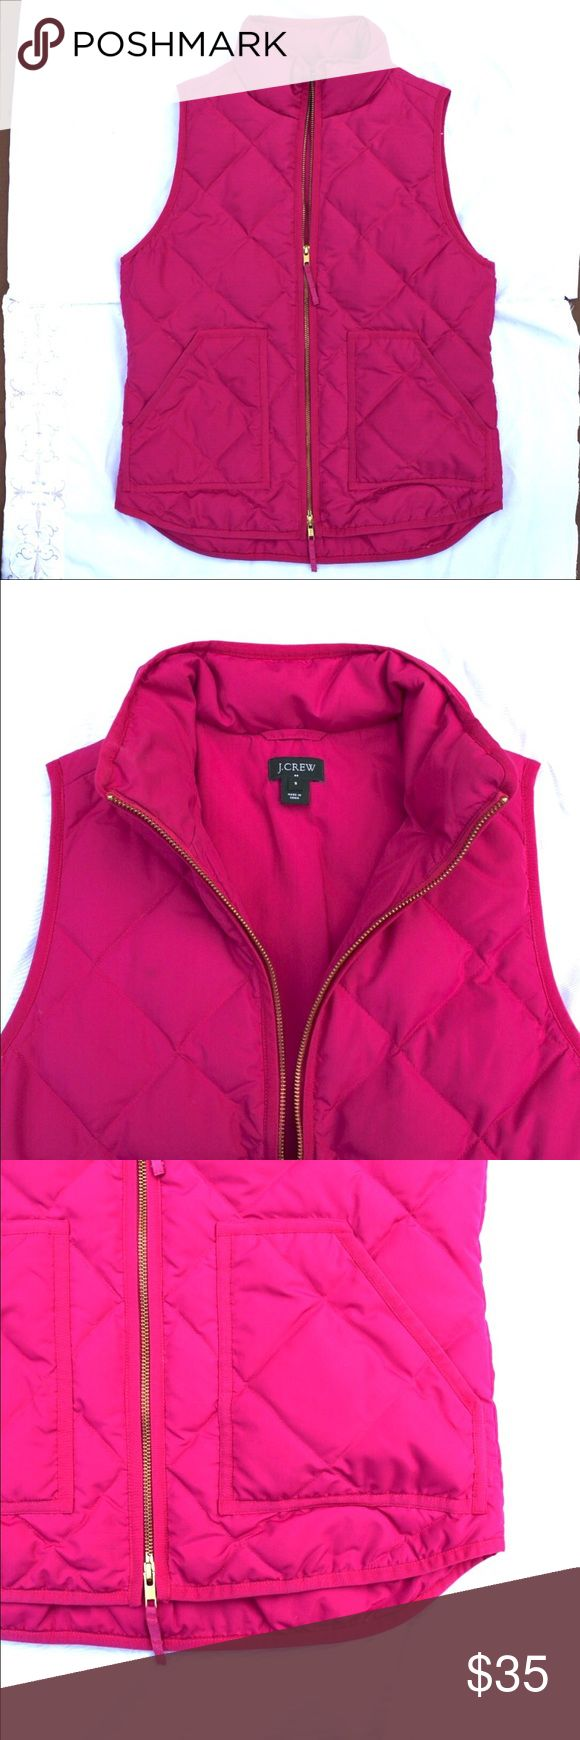 J. Crew Puffy Vest J. Crew Factory | puffy vest | pink | two pockets | zipper front with top zip and bottom zip J. Crew Factory Jackets & Coats Vests